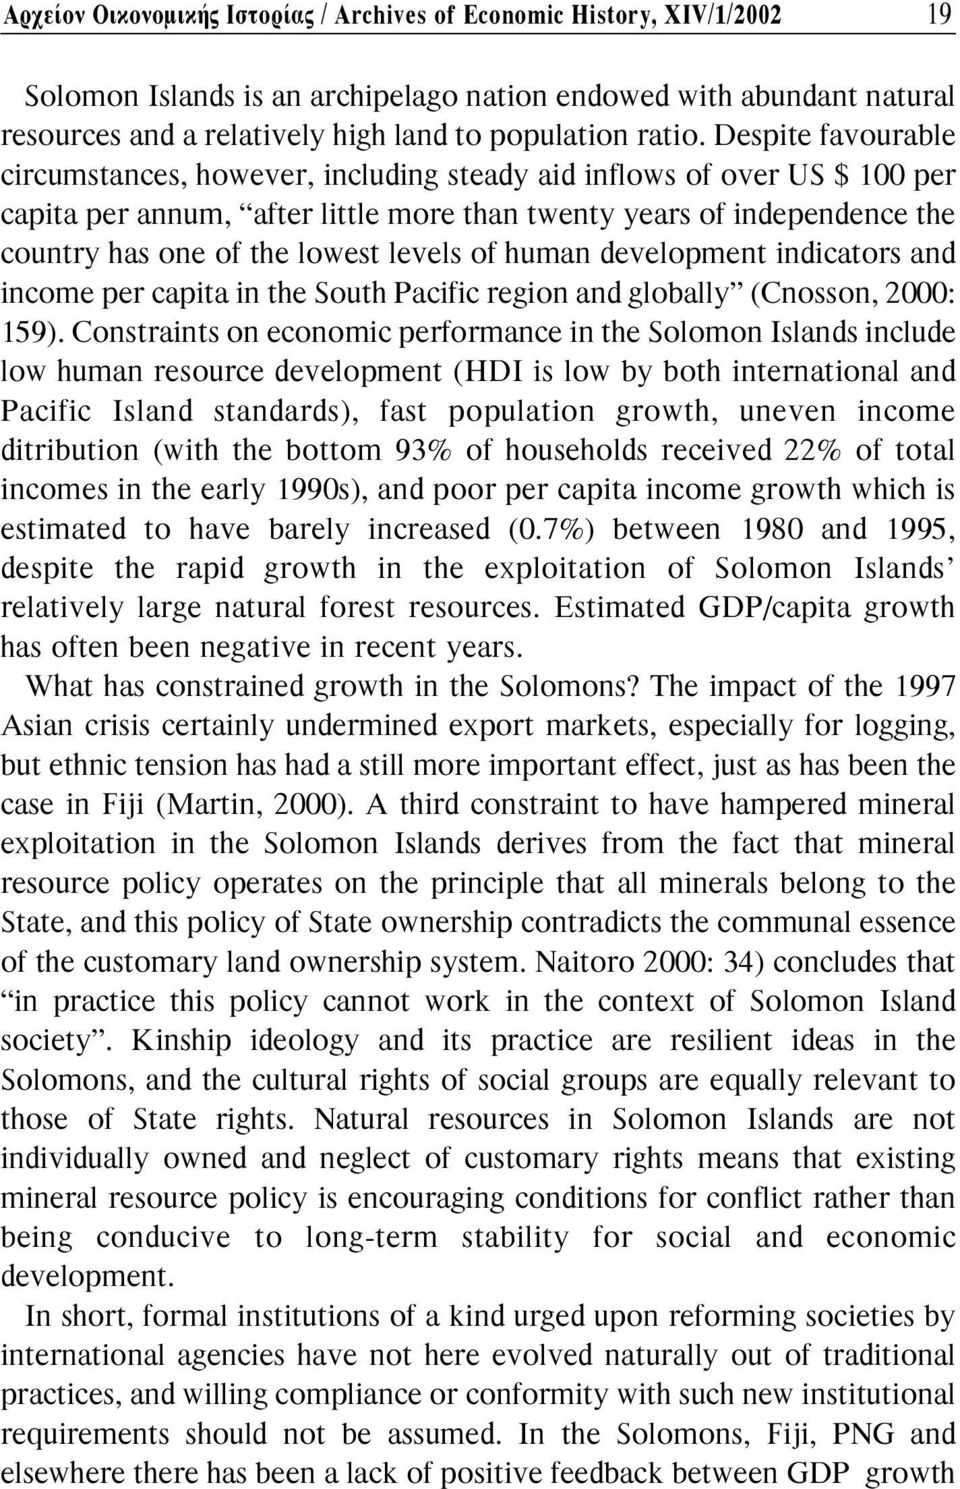 levels of human development indicators and income per capita in the South Pacific region and globally (Cnosson, 2000: 159).